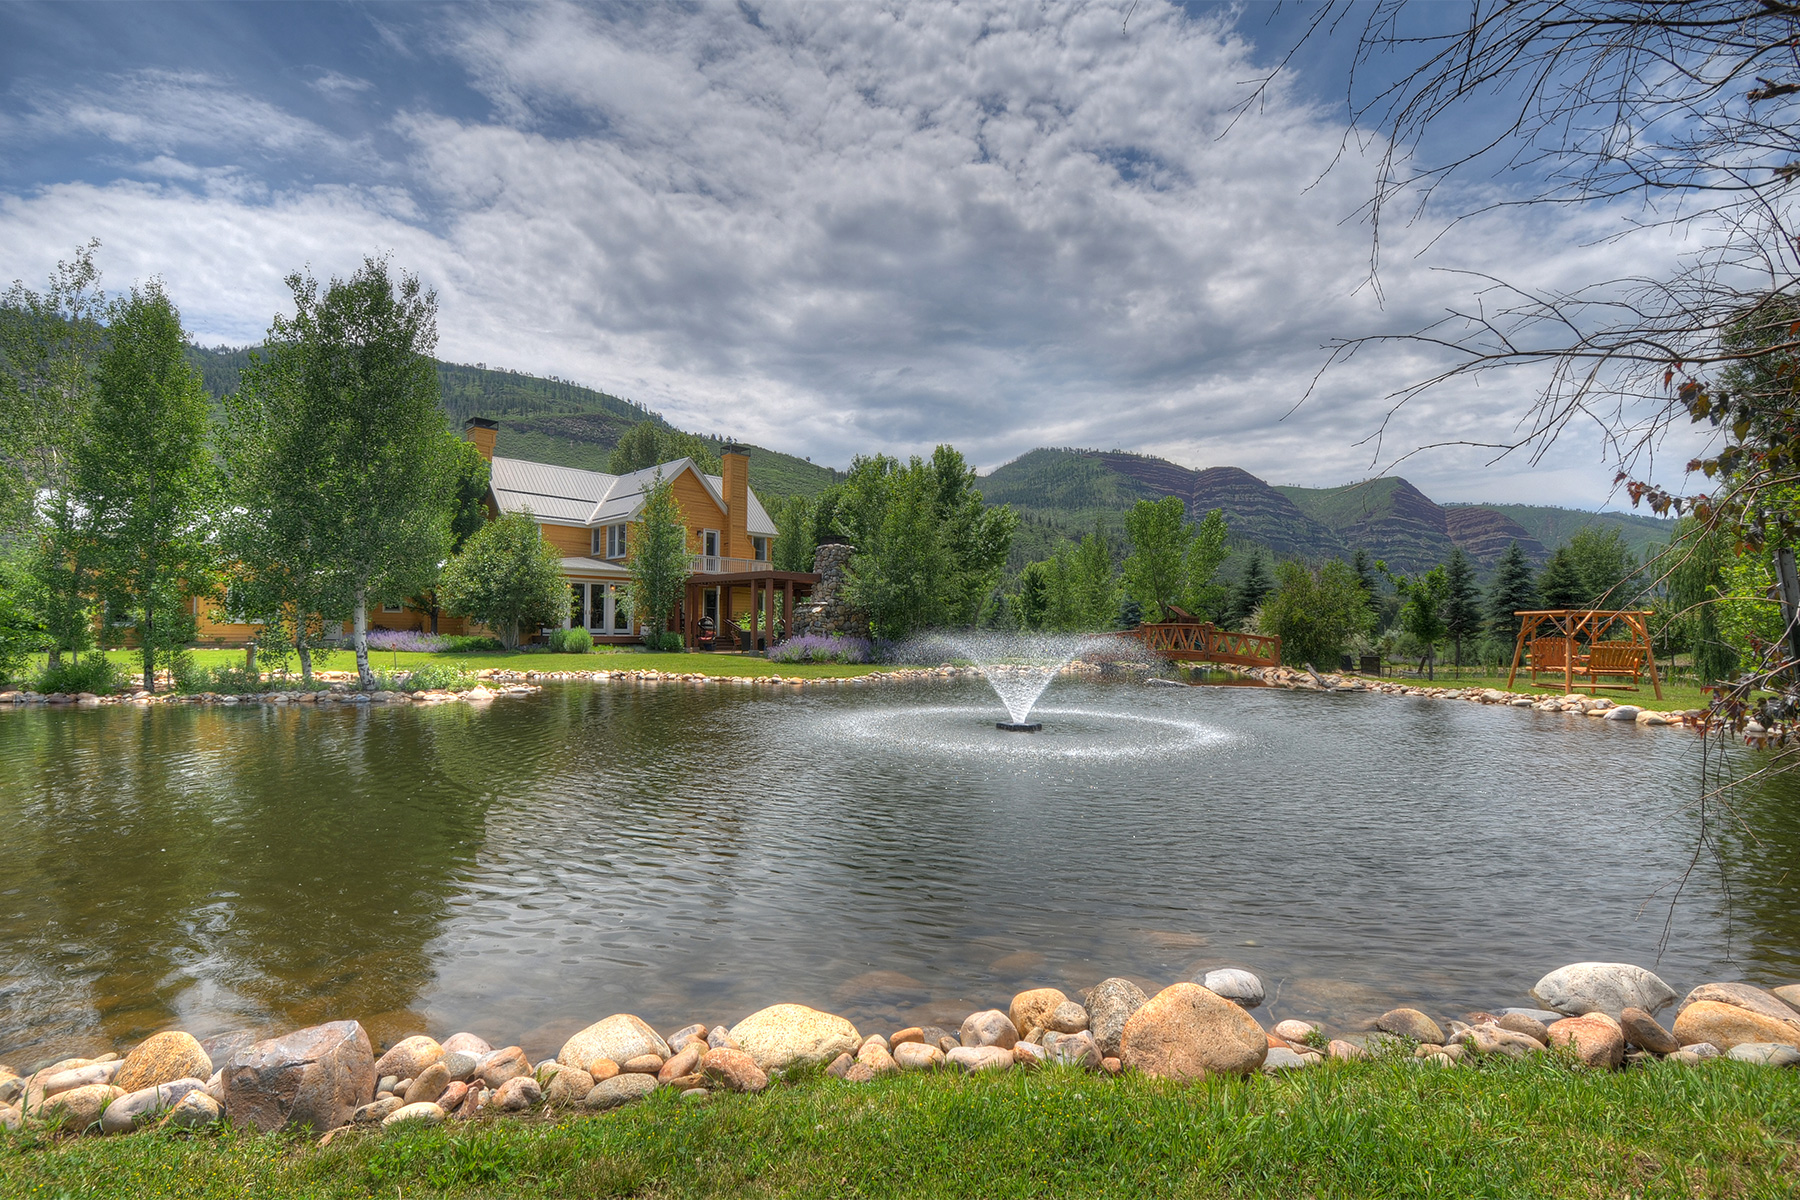 Single Family Home for Sale at Wild Wings Ranch 615 S Coon Creek Durango, Colorado 81301 United States